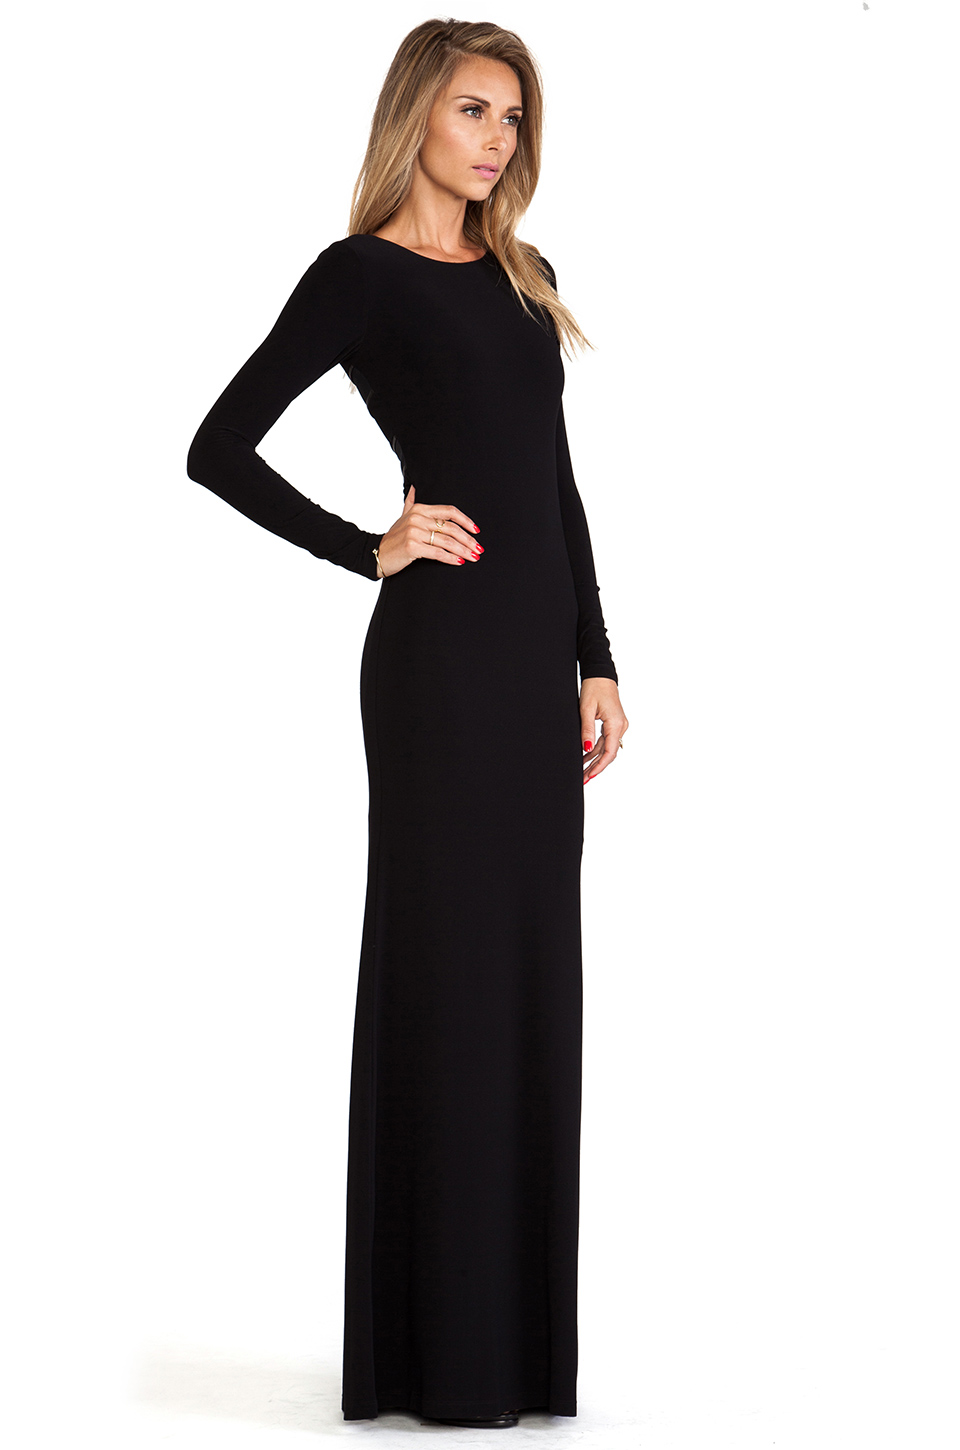 Long Dresses Revolve Fashions Dresses Opt for a printed long sleeve mini dress to emphasise your pins or a midi dress with a plunging neckline for your big night out! long dresses revolve fashions dresses